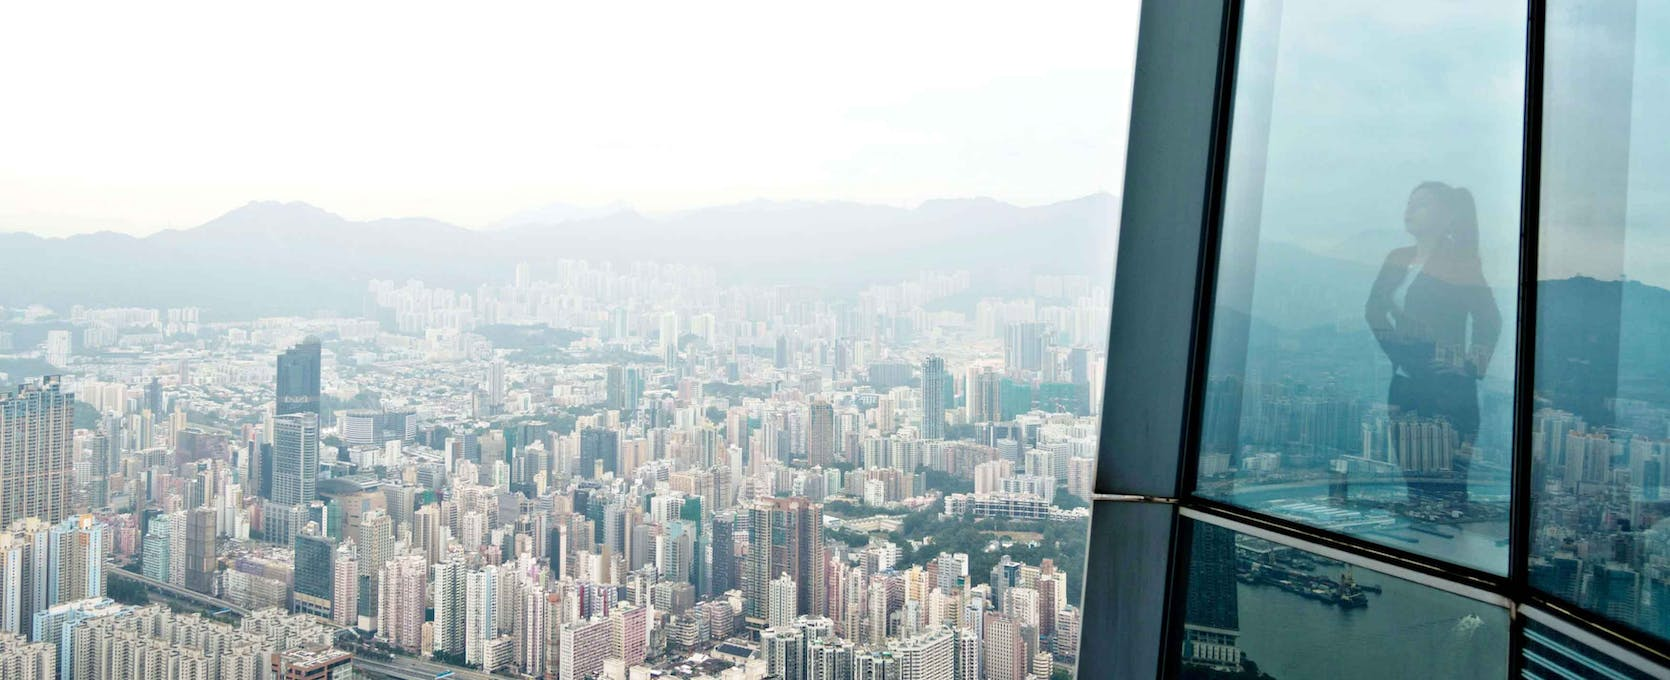 Real estate developer looks at city from above